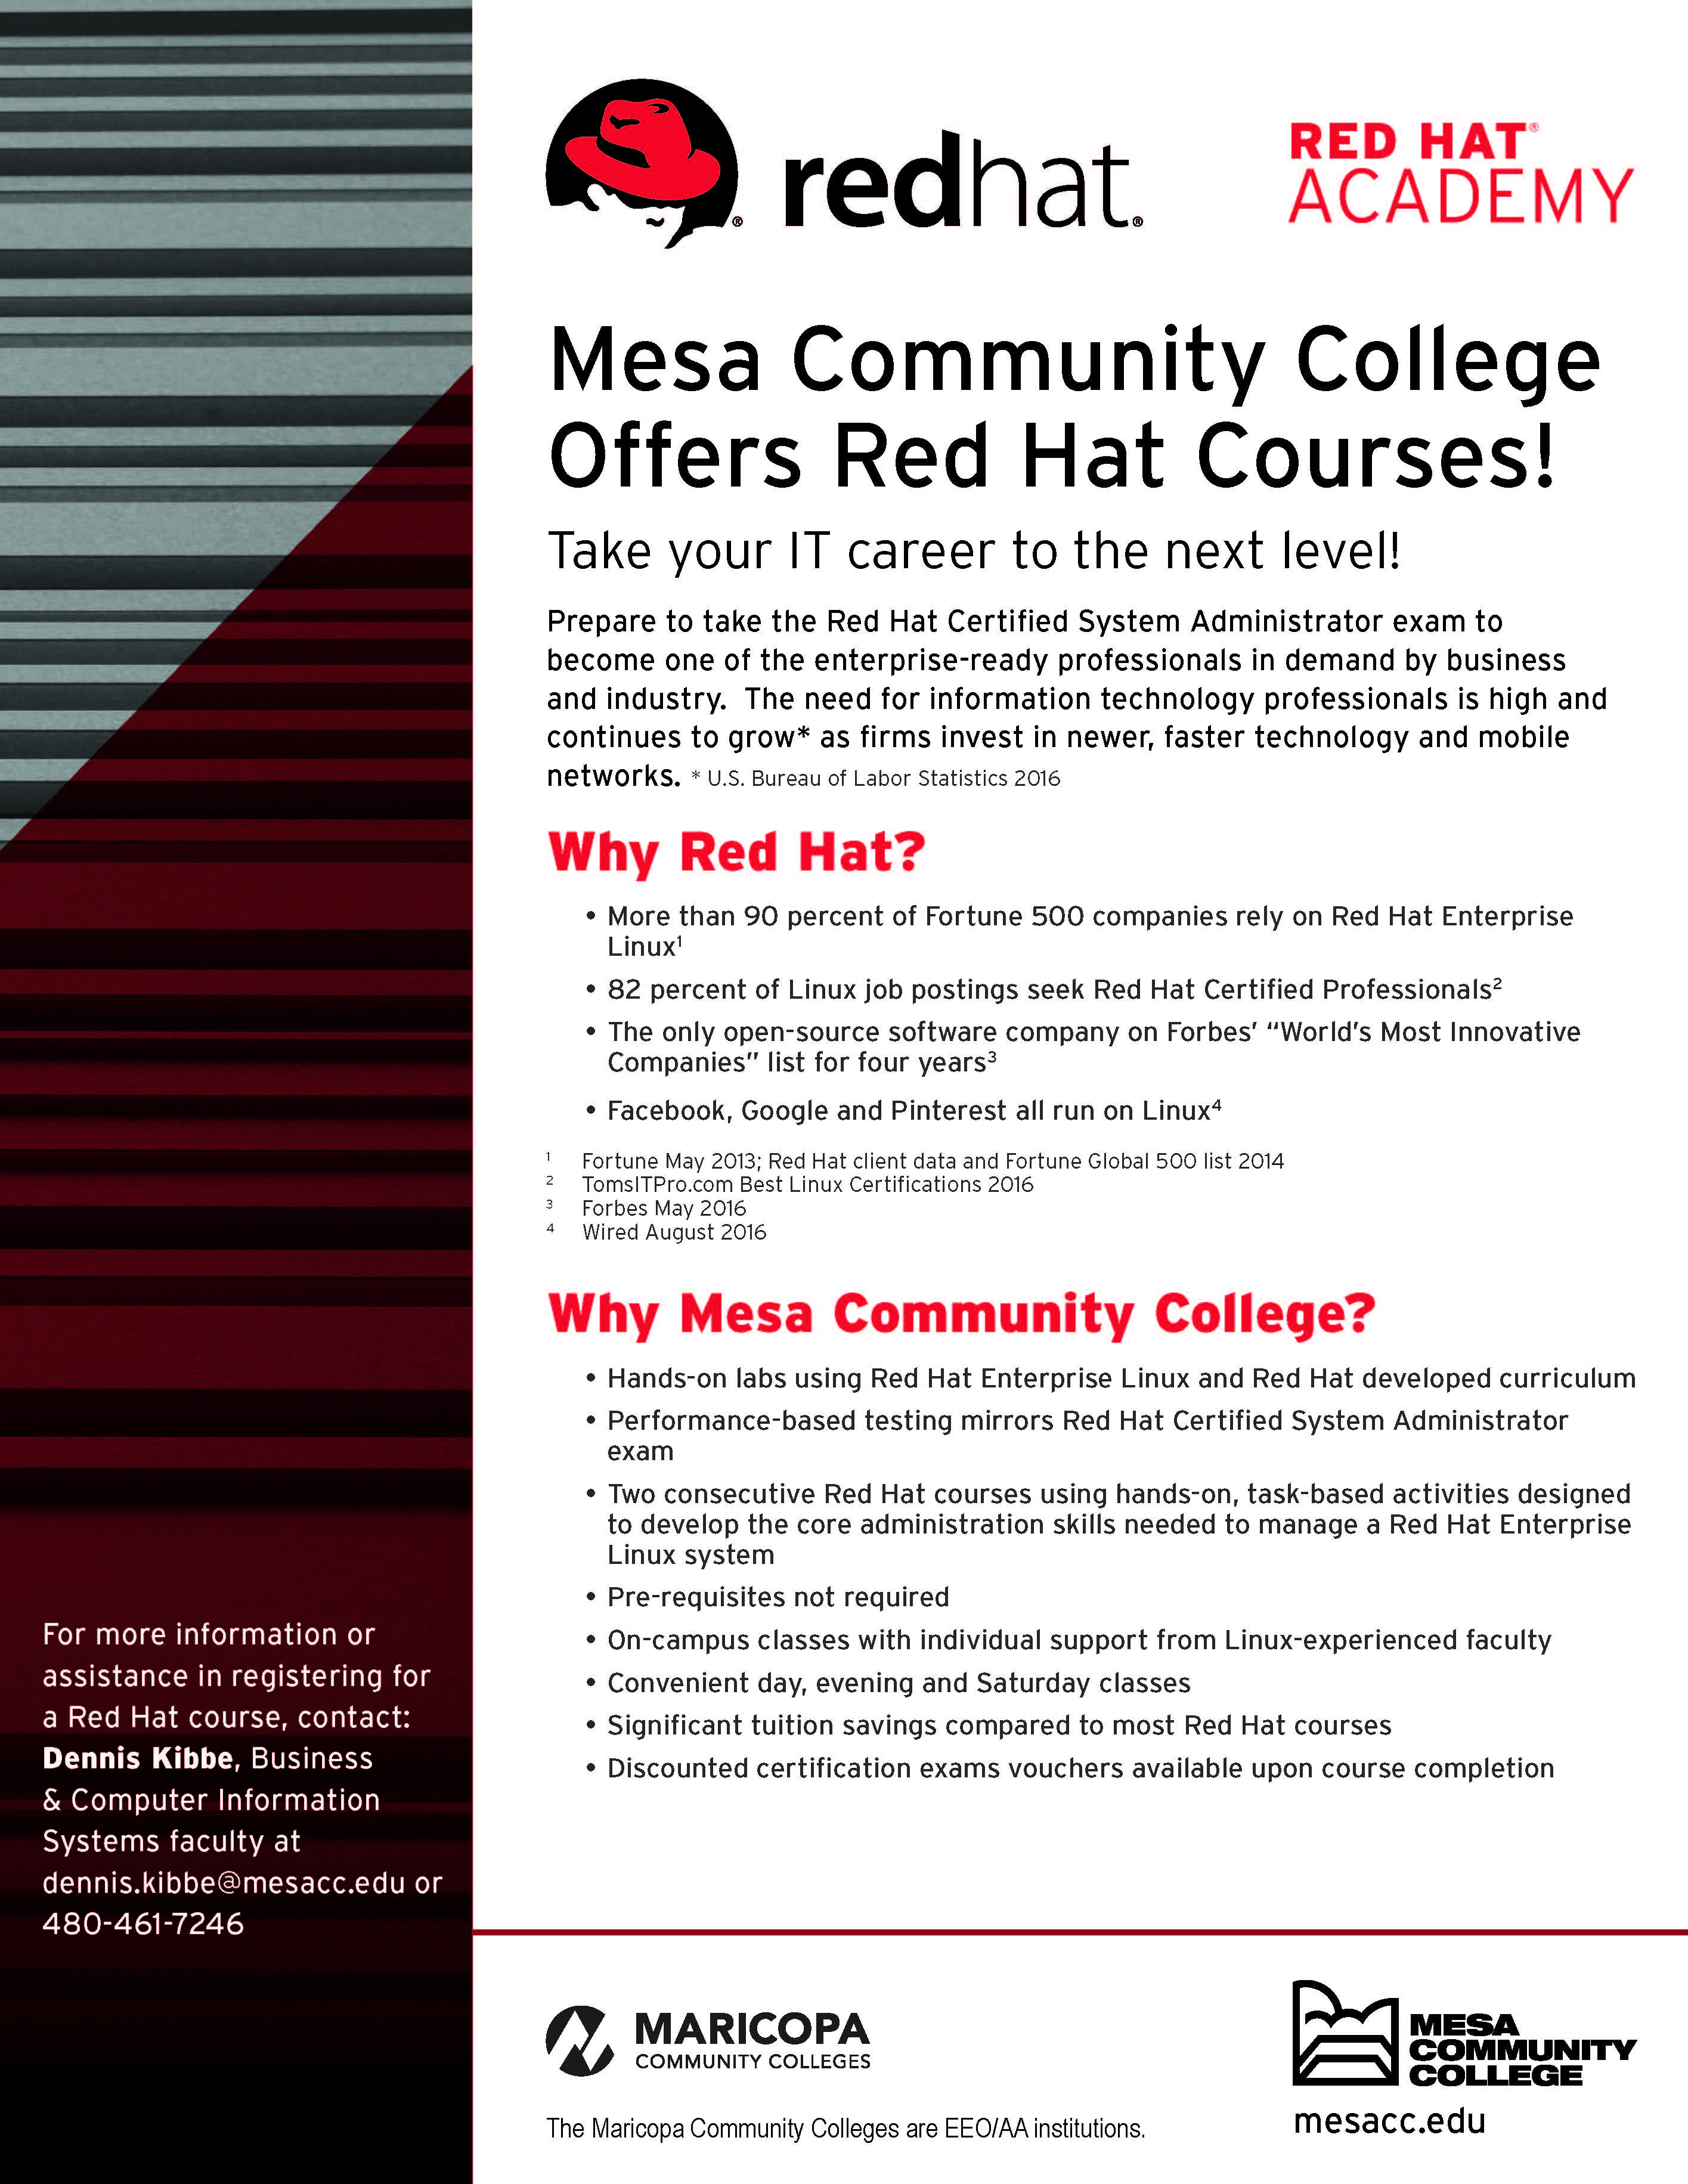 Mesa Community College Offers Red Hat Academy Press Release